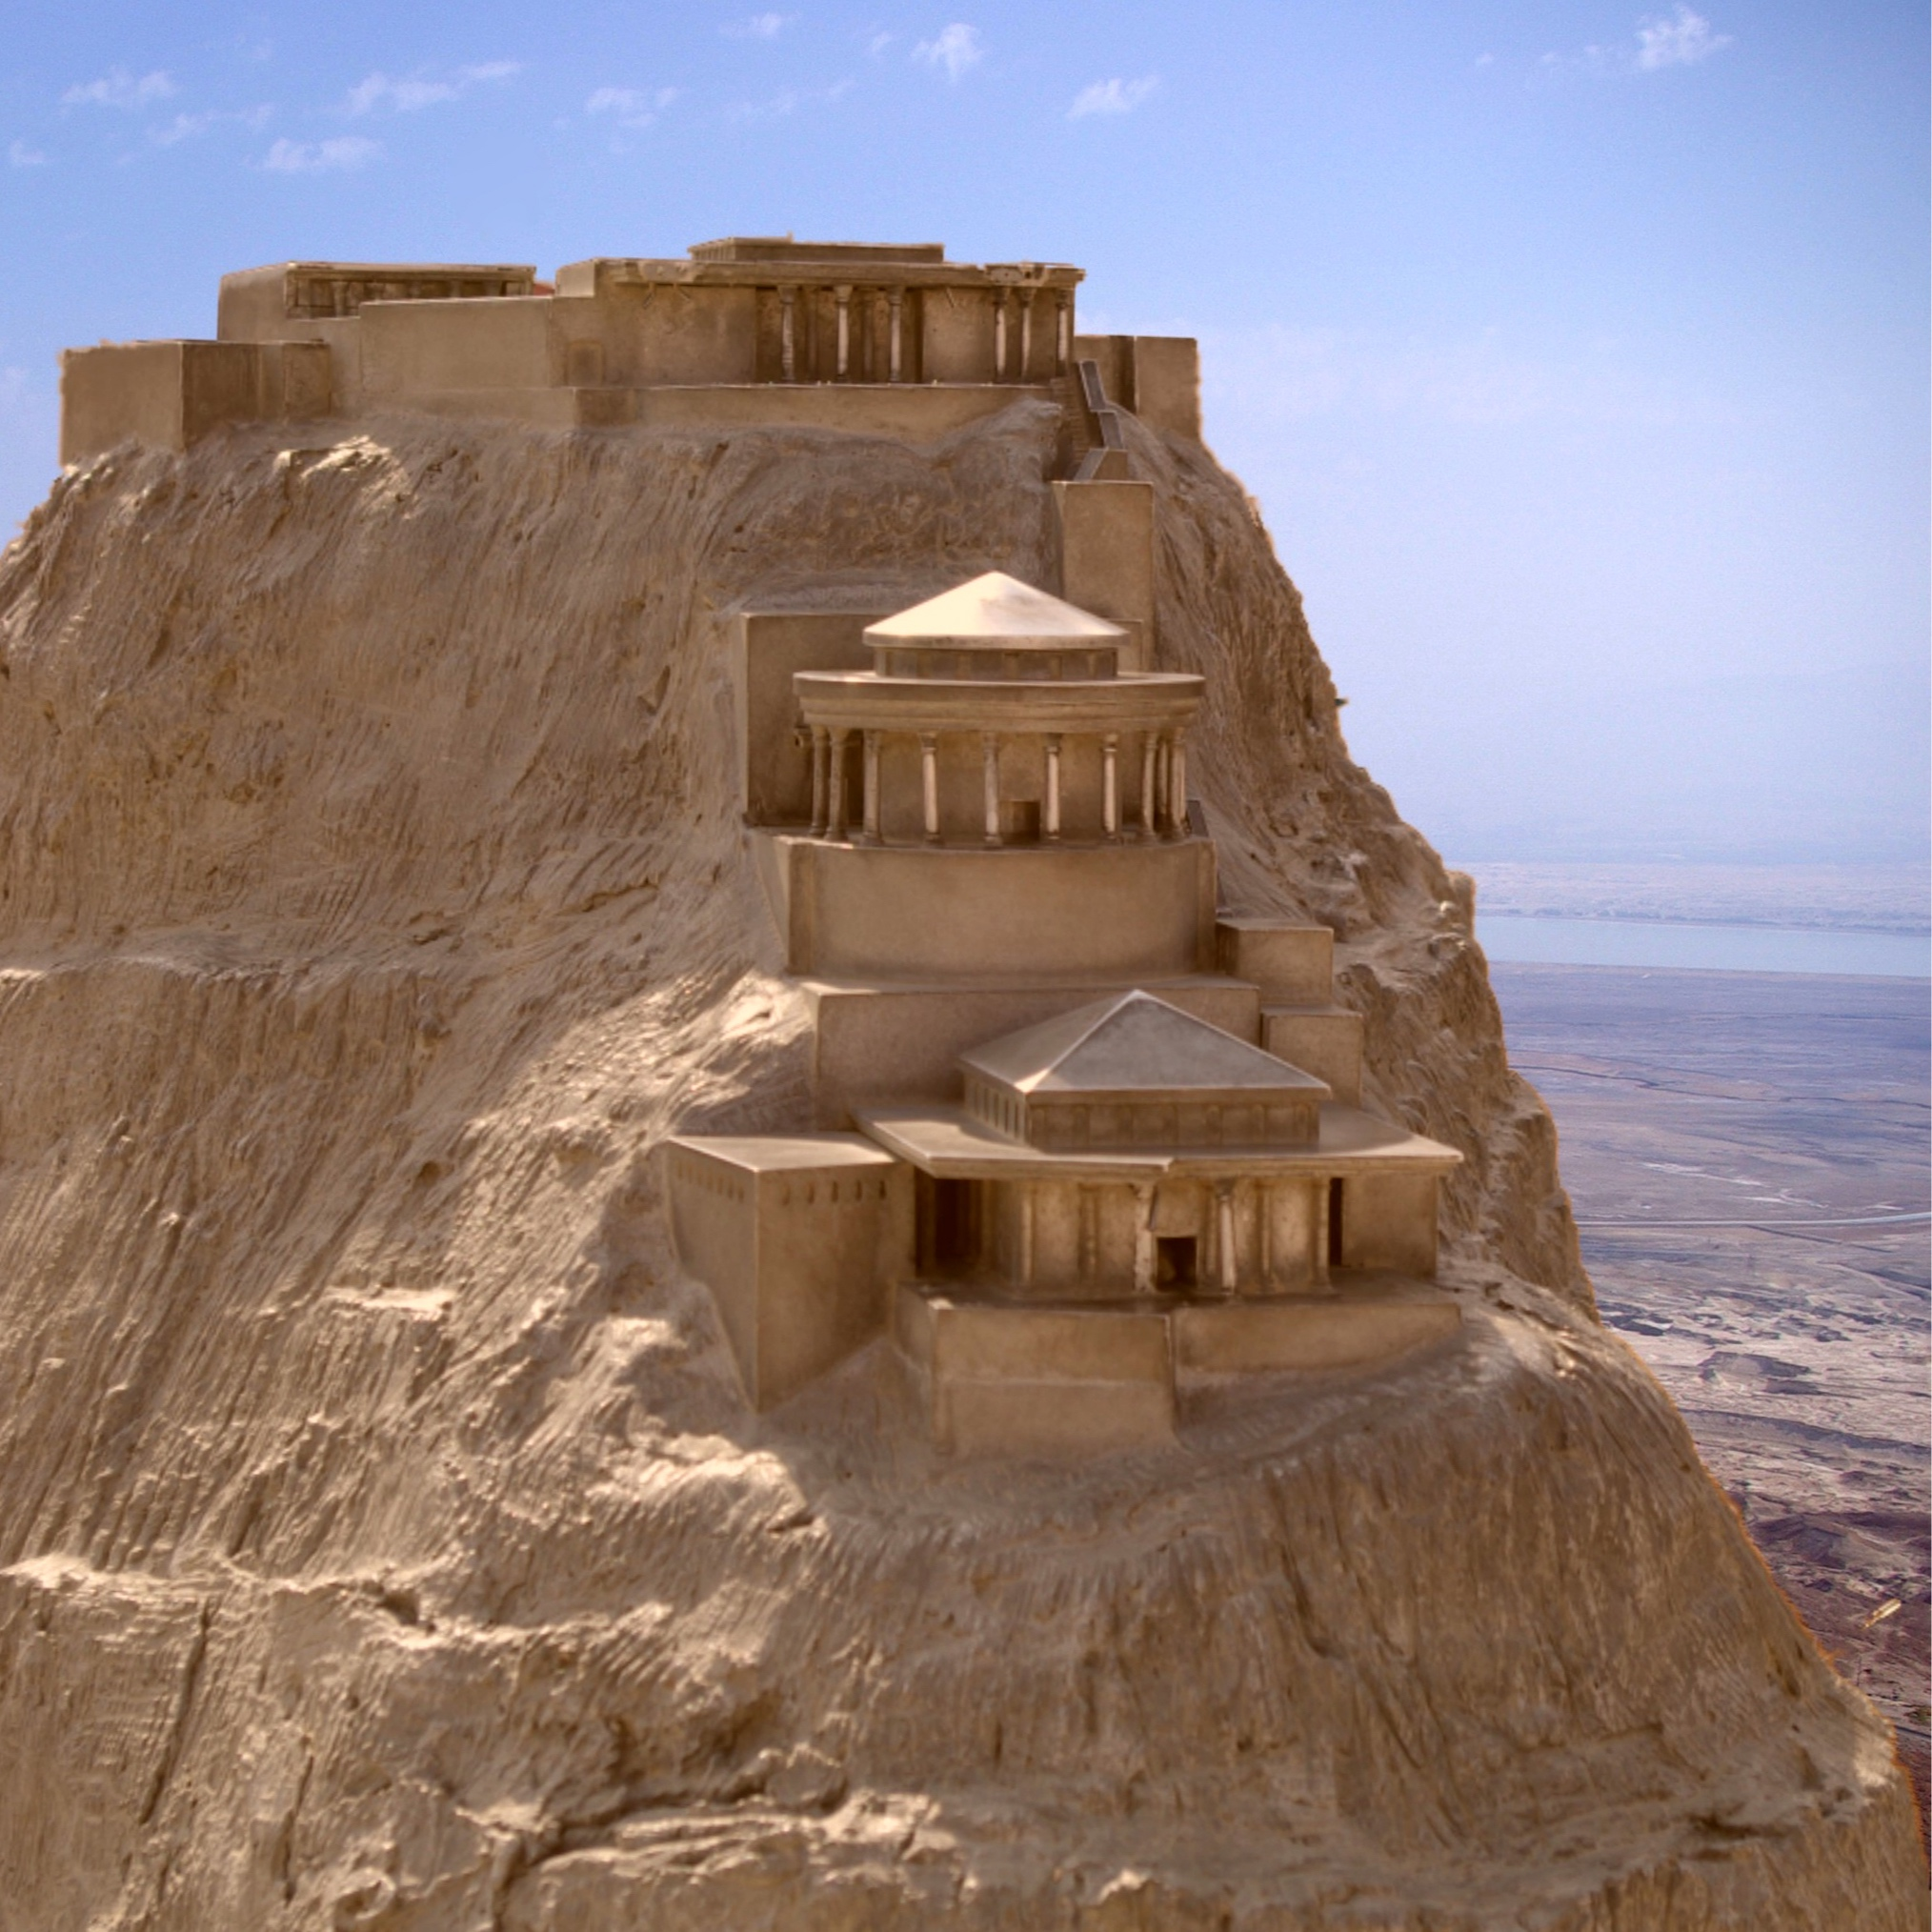 A computer mockup of Herod's luxurious Palace hanging on the cliffs of the Masada